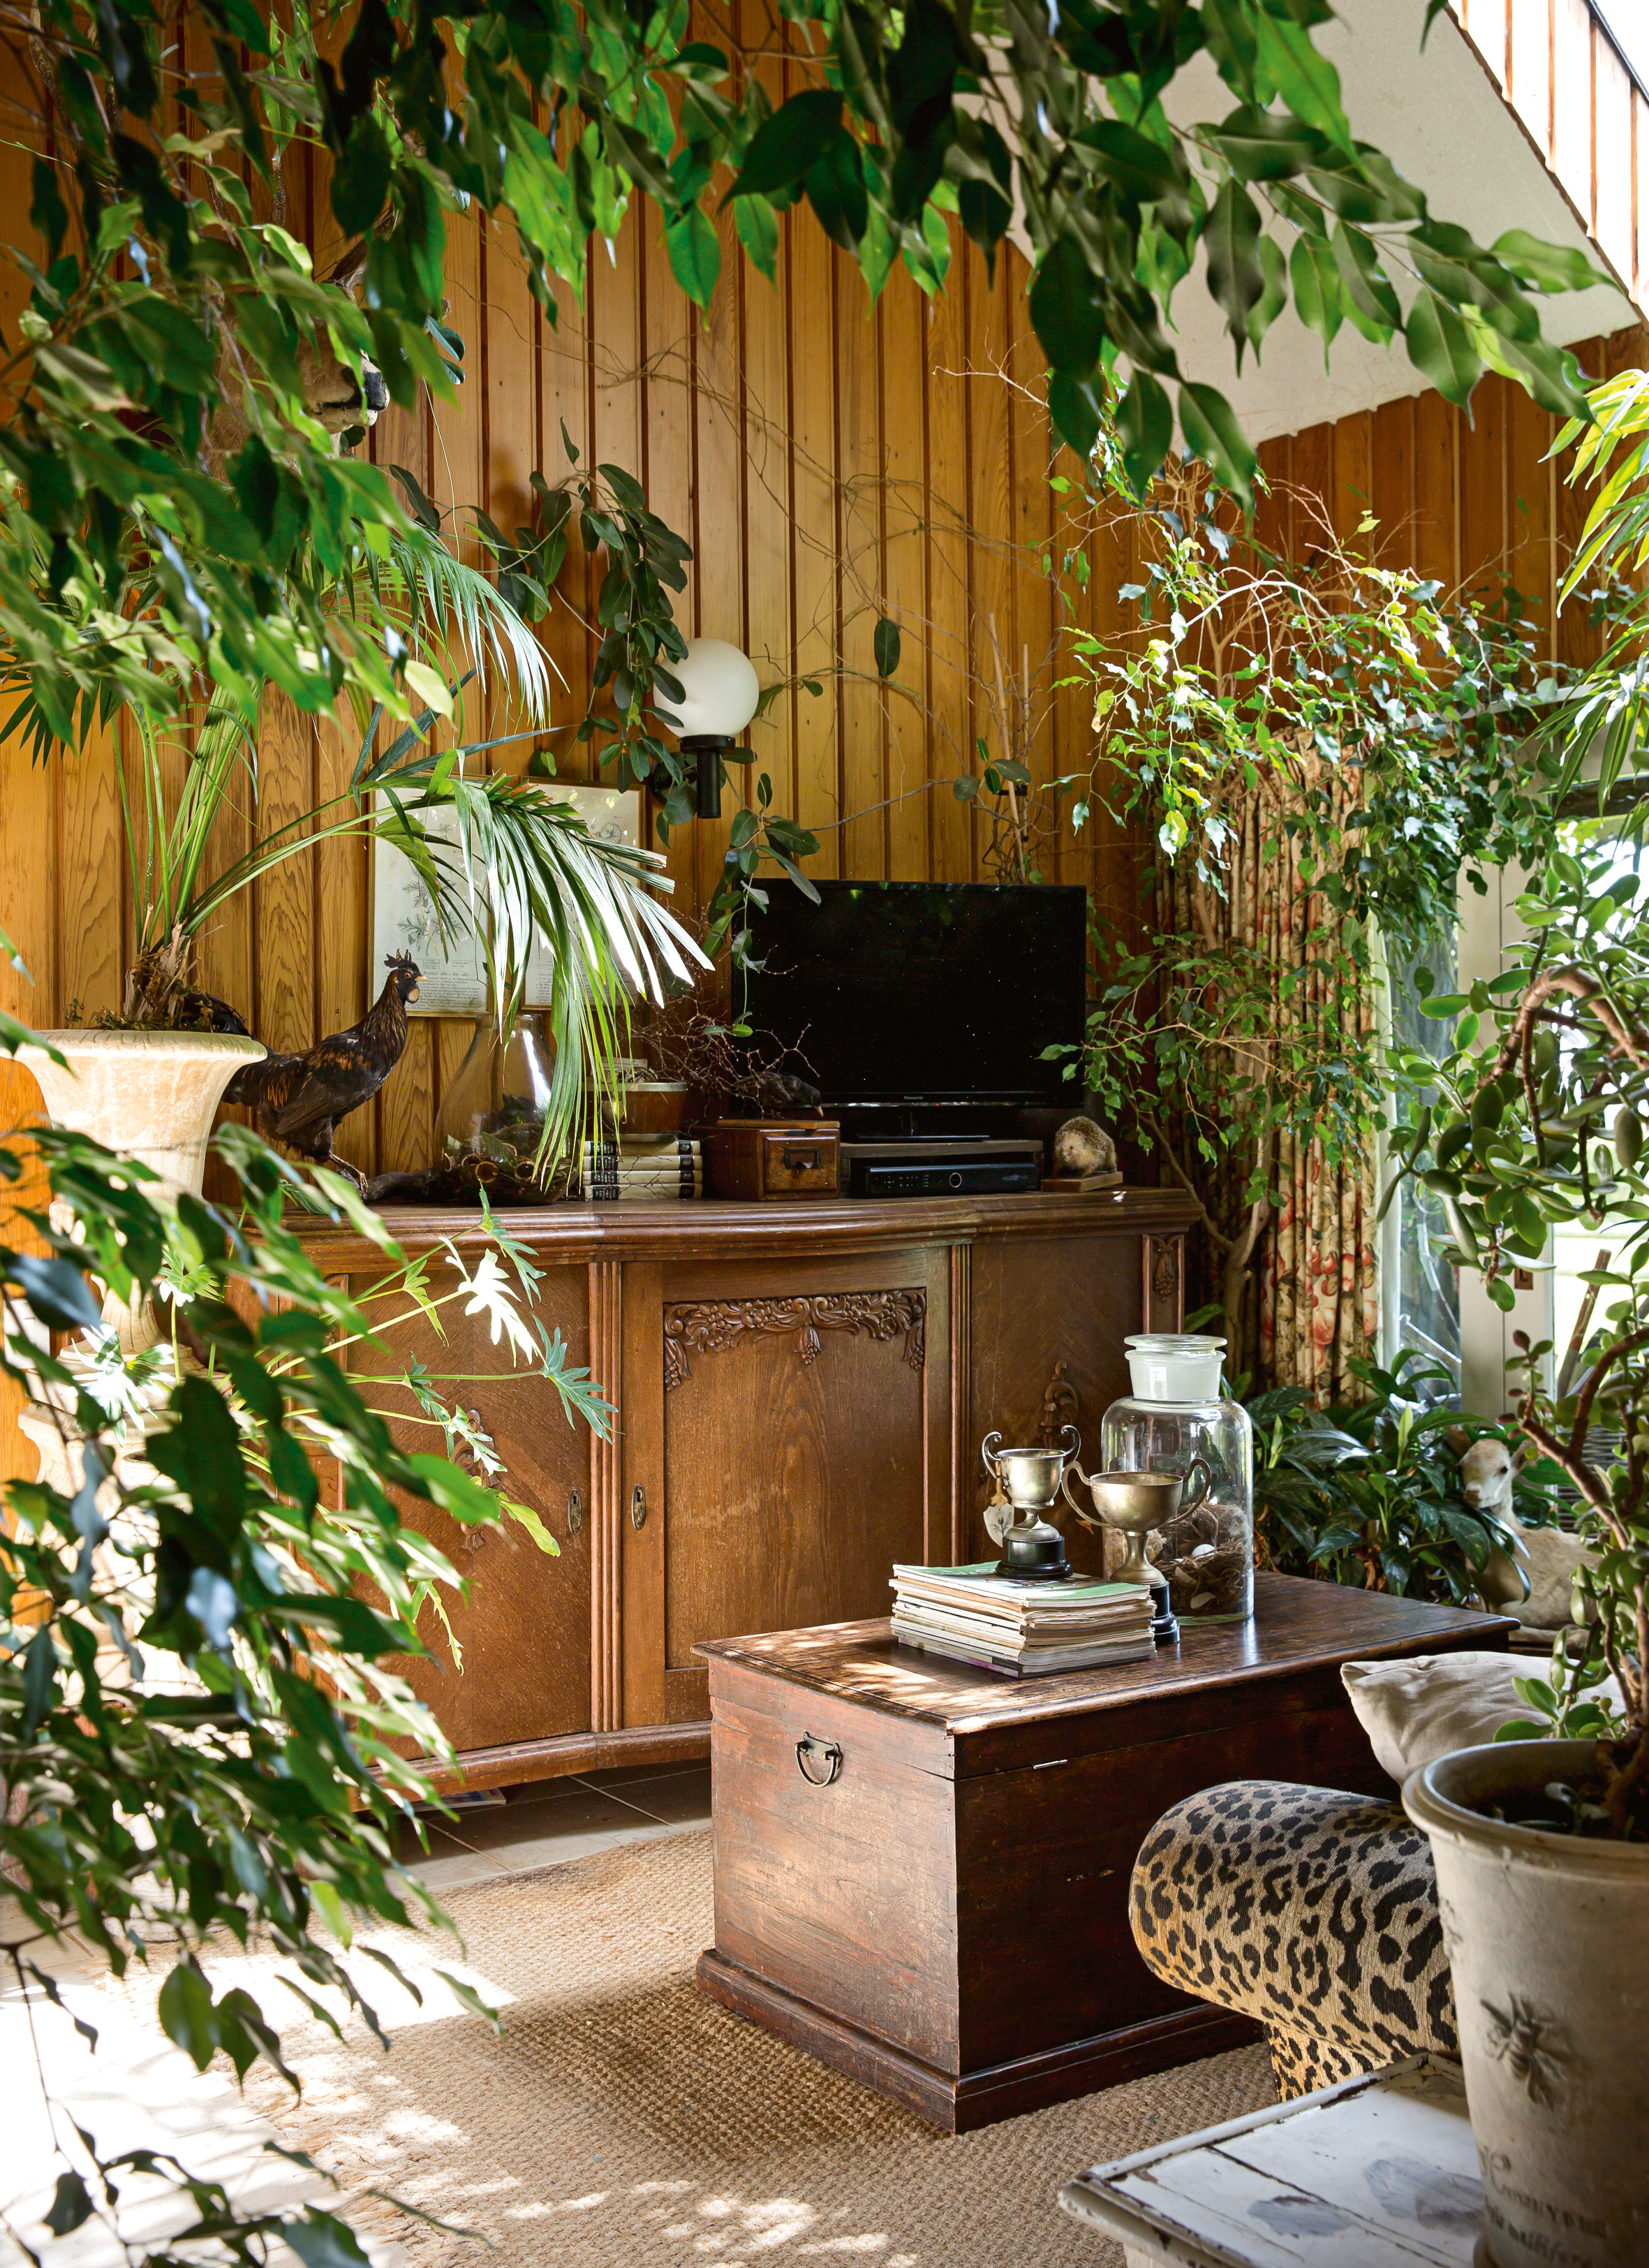 stylist design house plant seeds. The  winter room is filled with vintage taxidermy and house plants CREDIT TESSA CHRISP A stylist s own country Christmas Stuff co nz